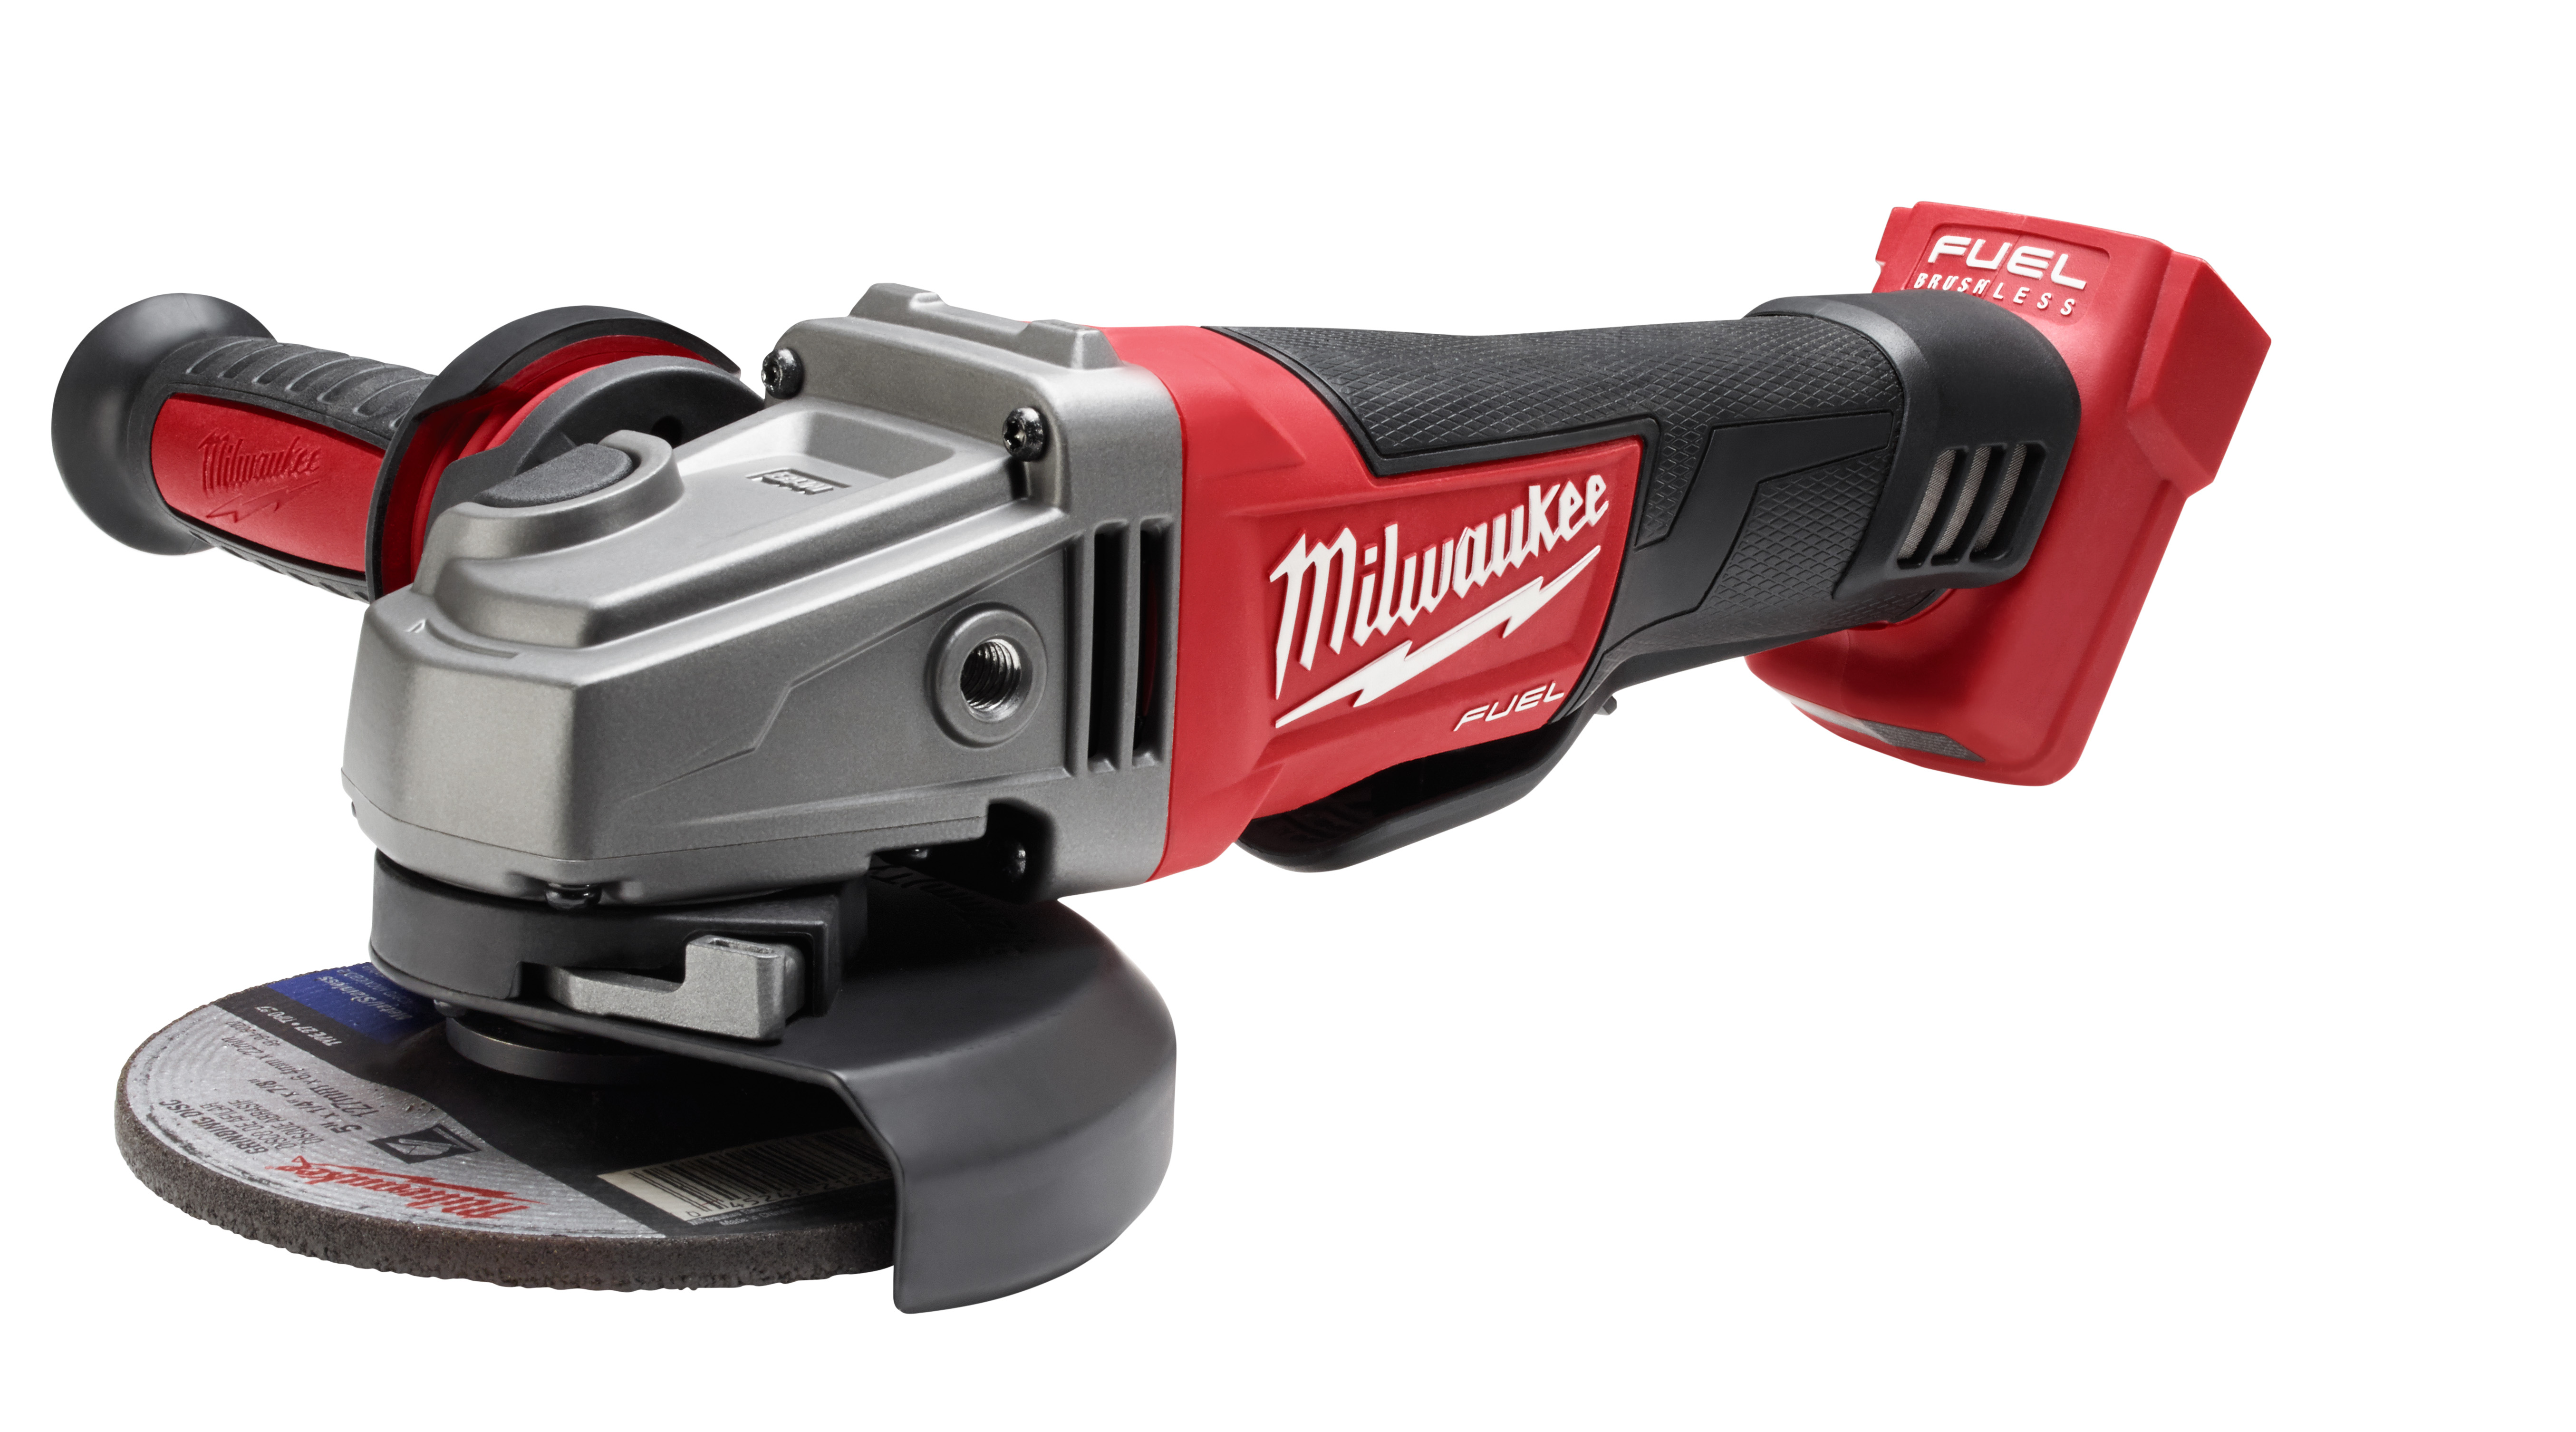 Milwaukee® M18™ FUEL™ 2780-20 Cordless Grinder, 4-1/2 in Dia Wheel, 5/8-11 Arbor/Shank, 18 VDC, Lithium-Ion Battery, Paddle No-Lock Switch